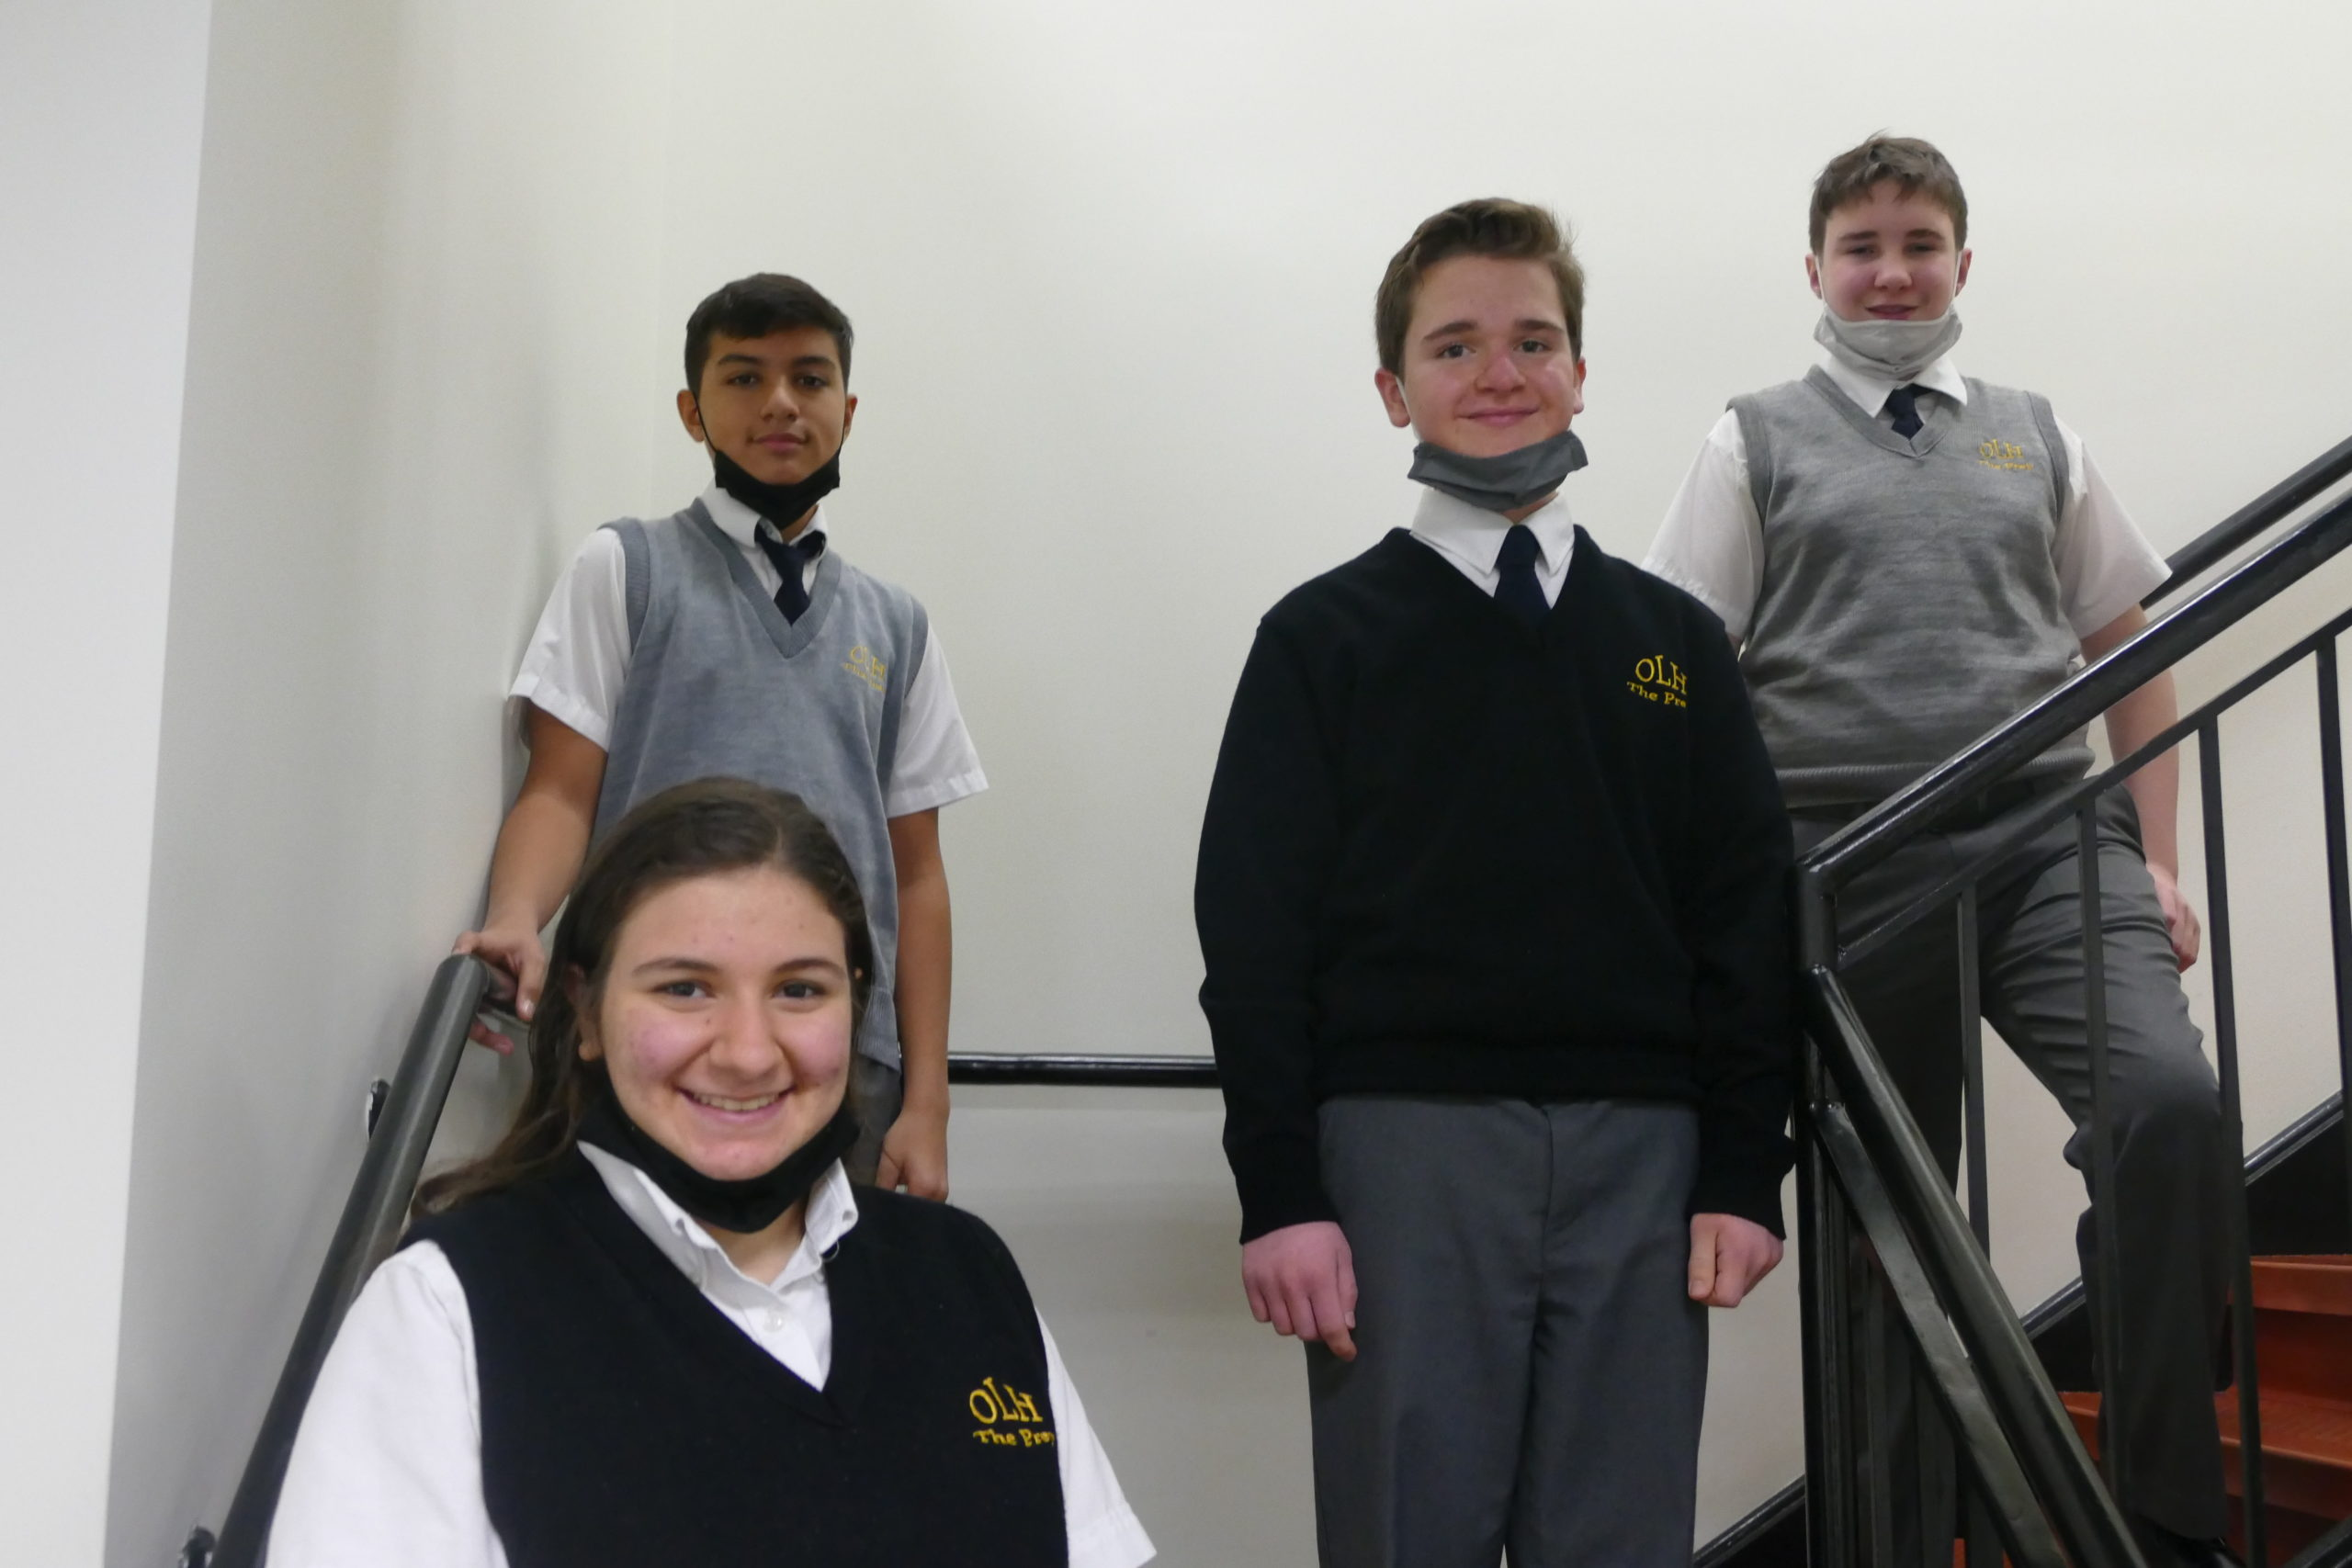 Sofia Patrone, Jack Leonard, Daniel Ospina and Patrick Kamm have earned scholarships to attend St. John the Baptist Discesan High School.